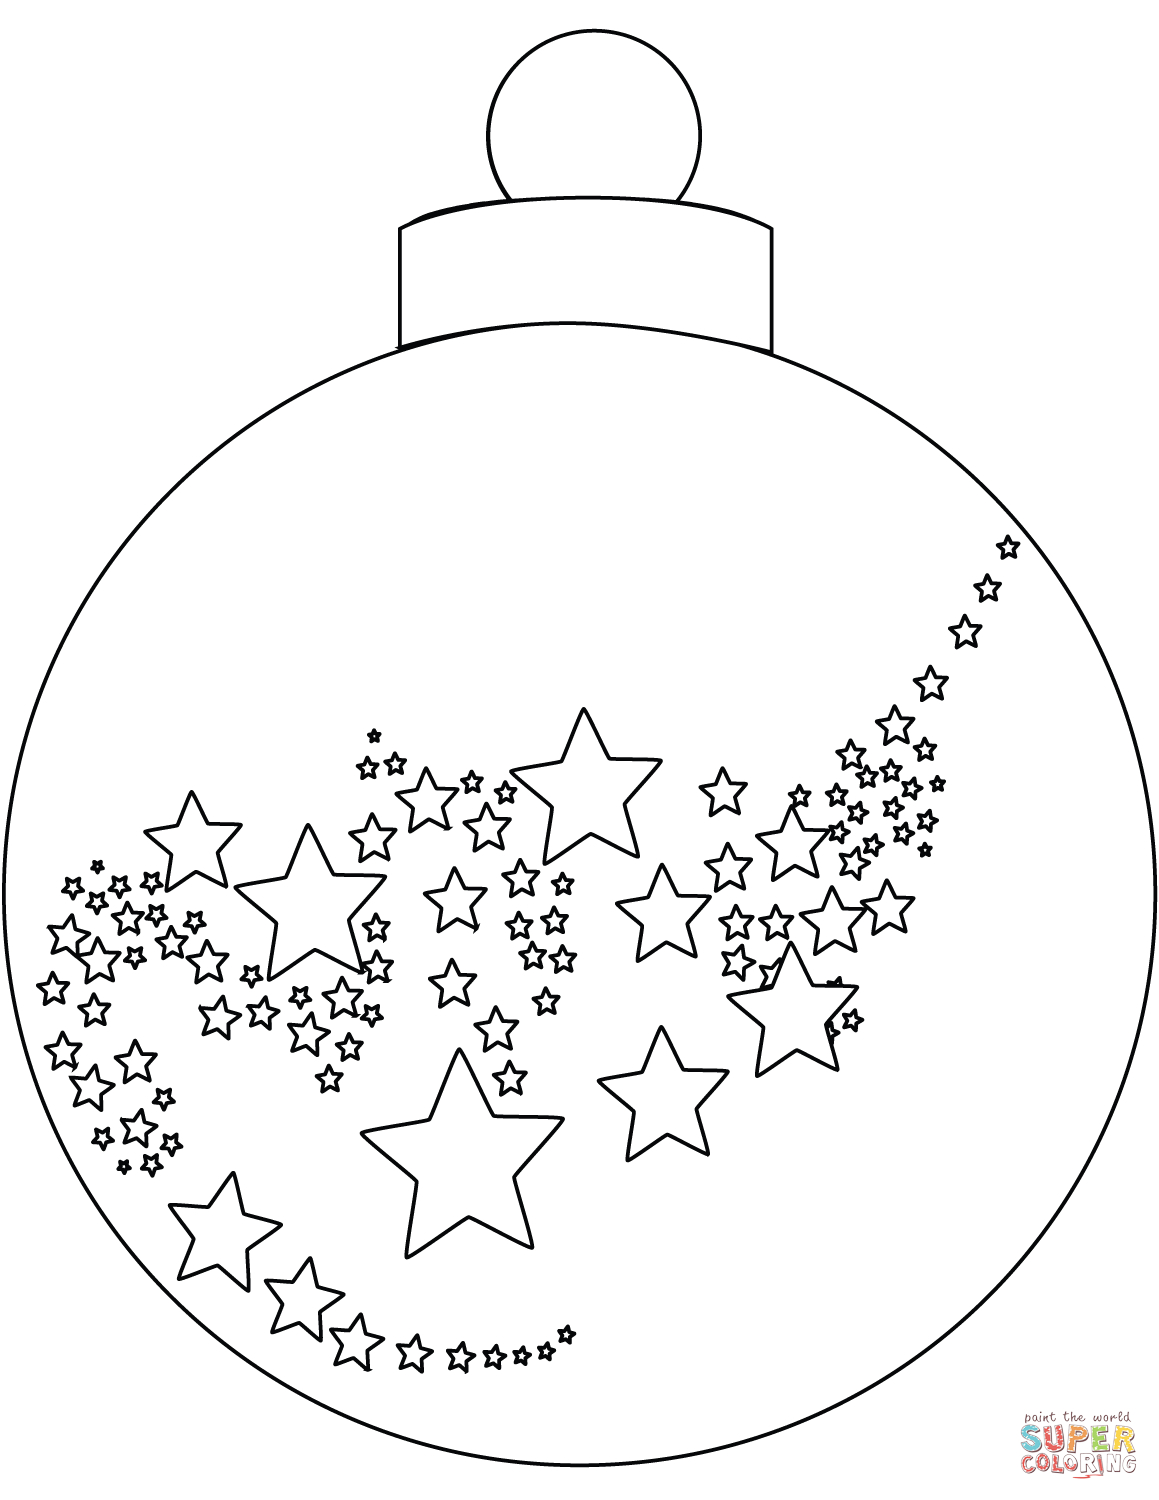 Christmas Ornament Coloring Page   Free Printable Coloring Pages - Free Printable Christmas Ornaments